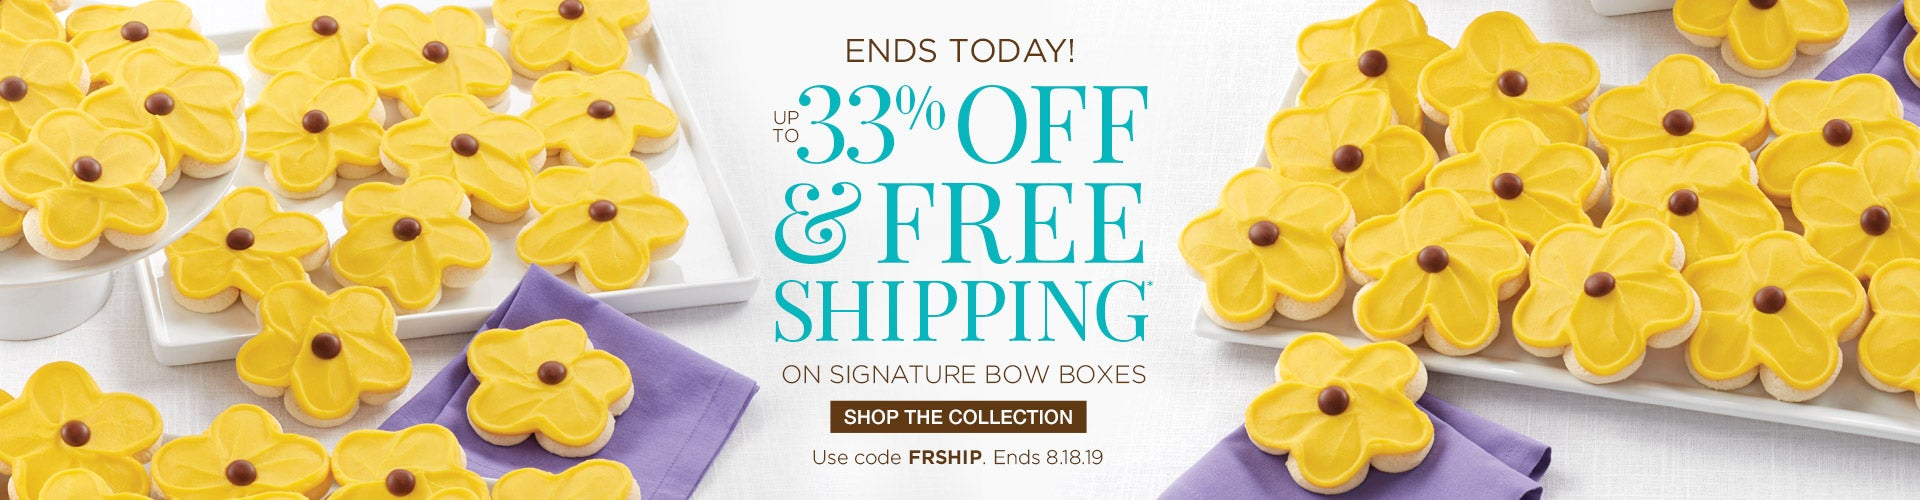 33% off Bow Boxes and free shipping